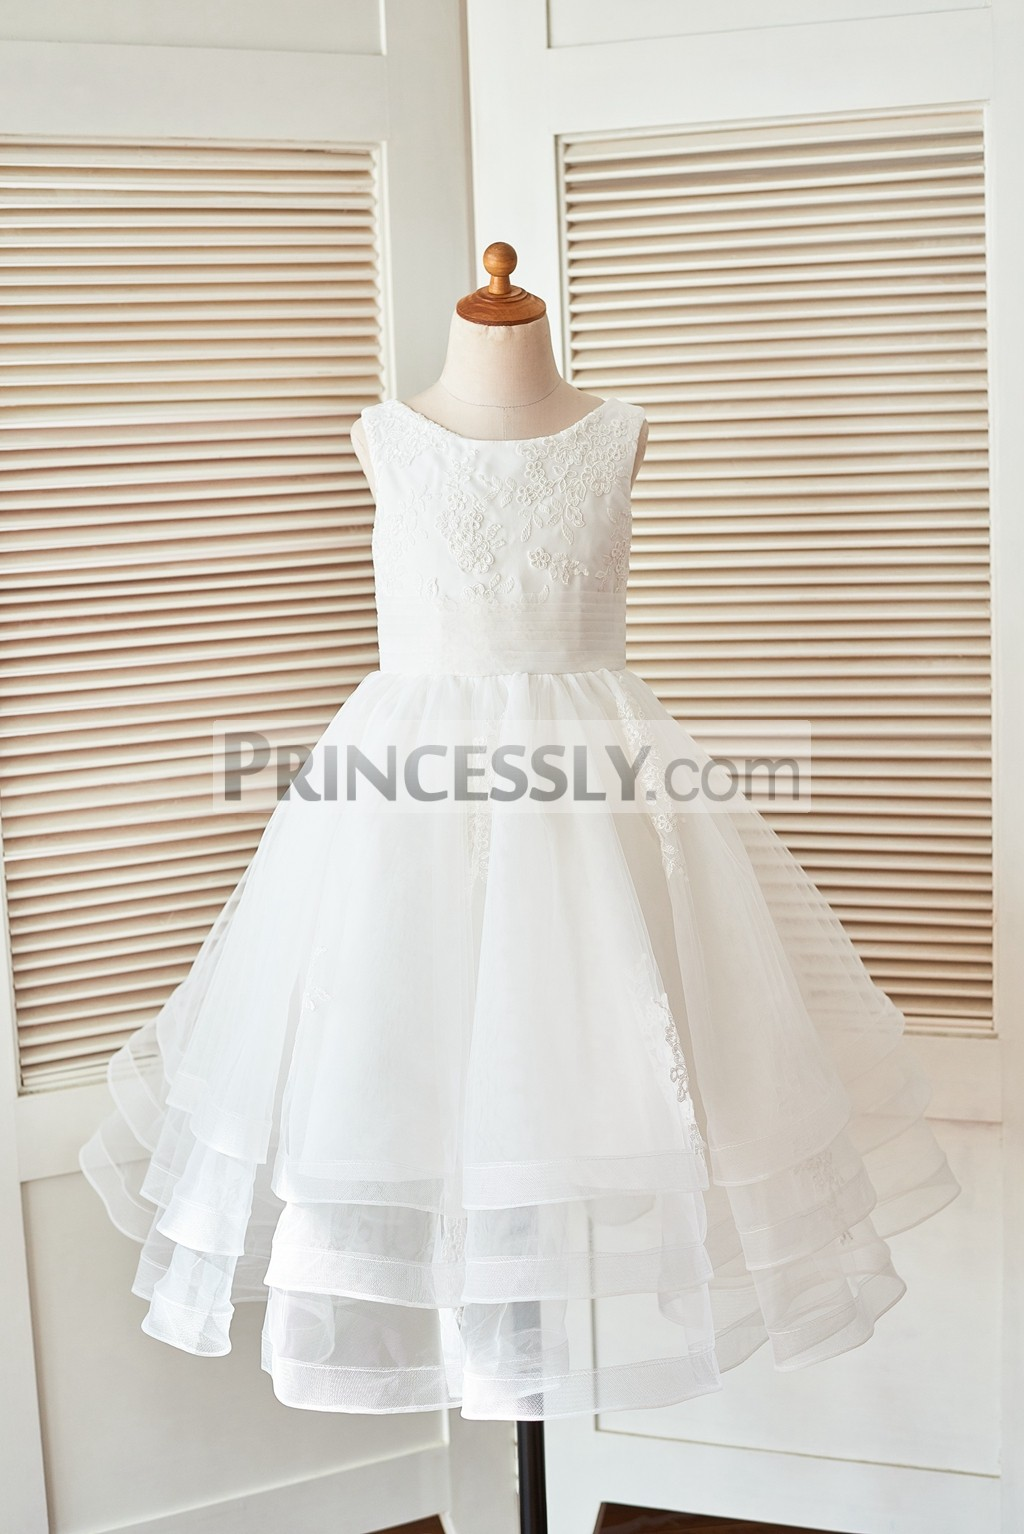 4413505df49 Ivory Lace Tulle Layers Flower Girl Dress with Horse Hair Tulle Hem